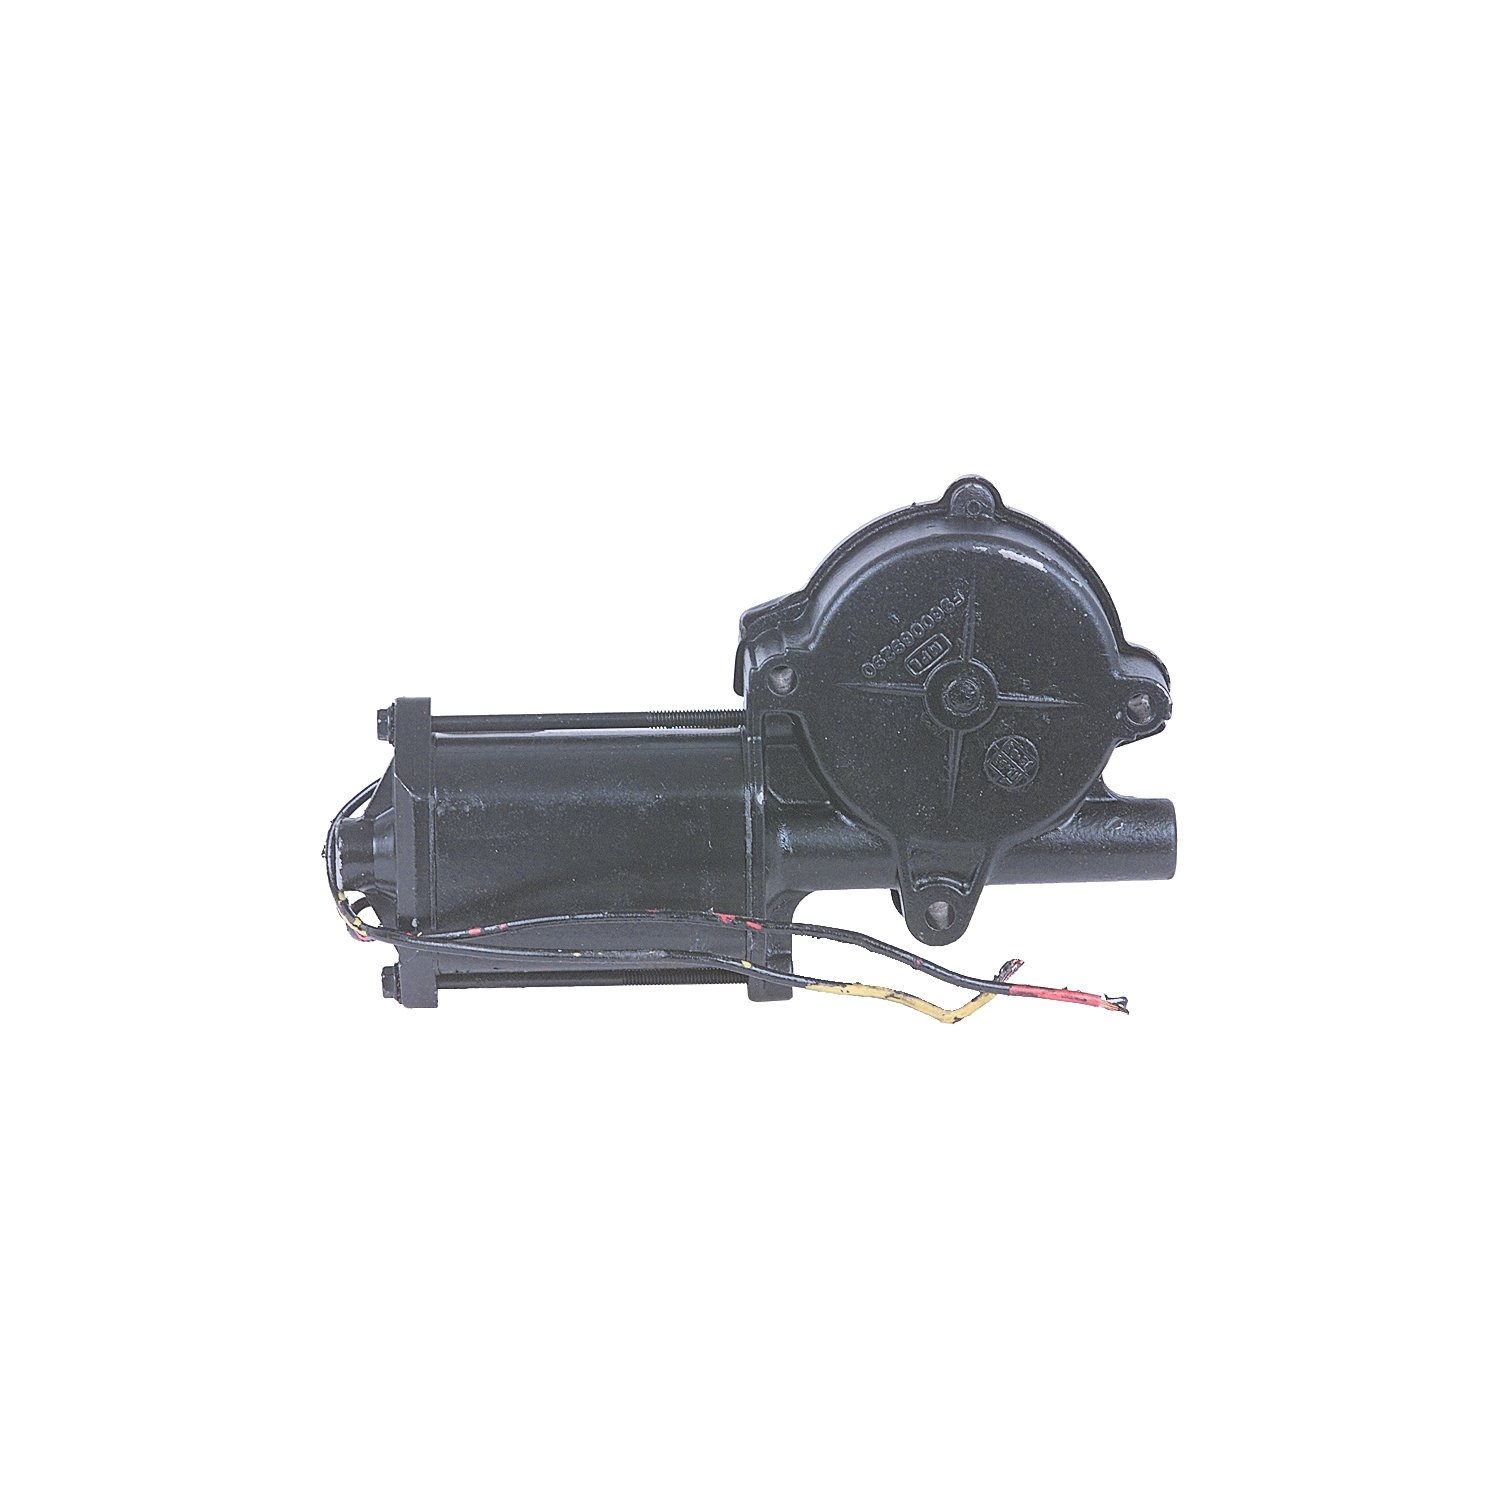 Cardone 42-339 Remanufactured Domestic Window Lift Motor 42339AAF